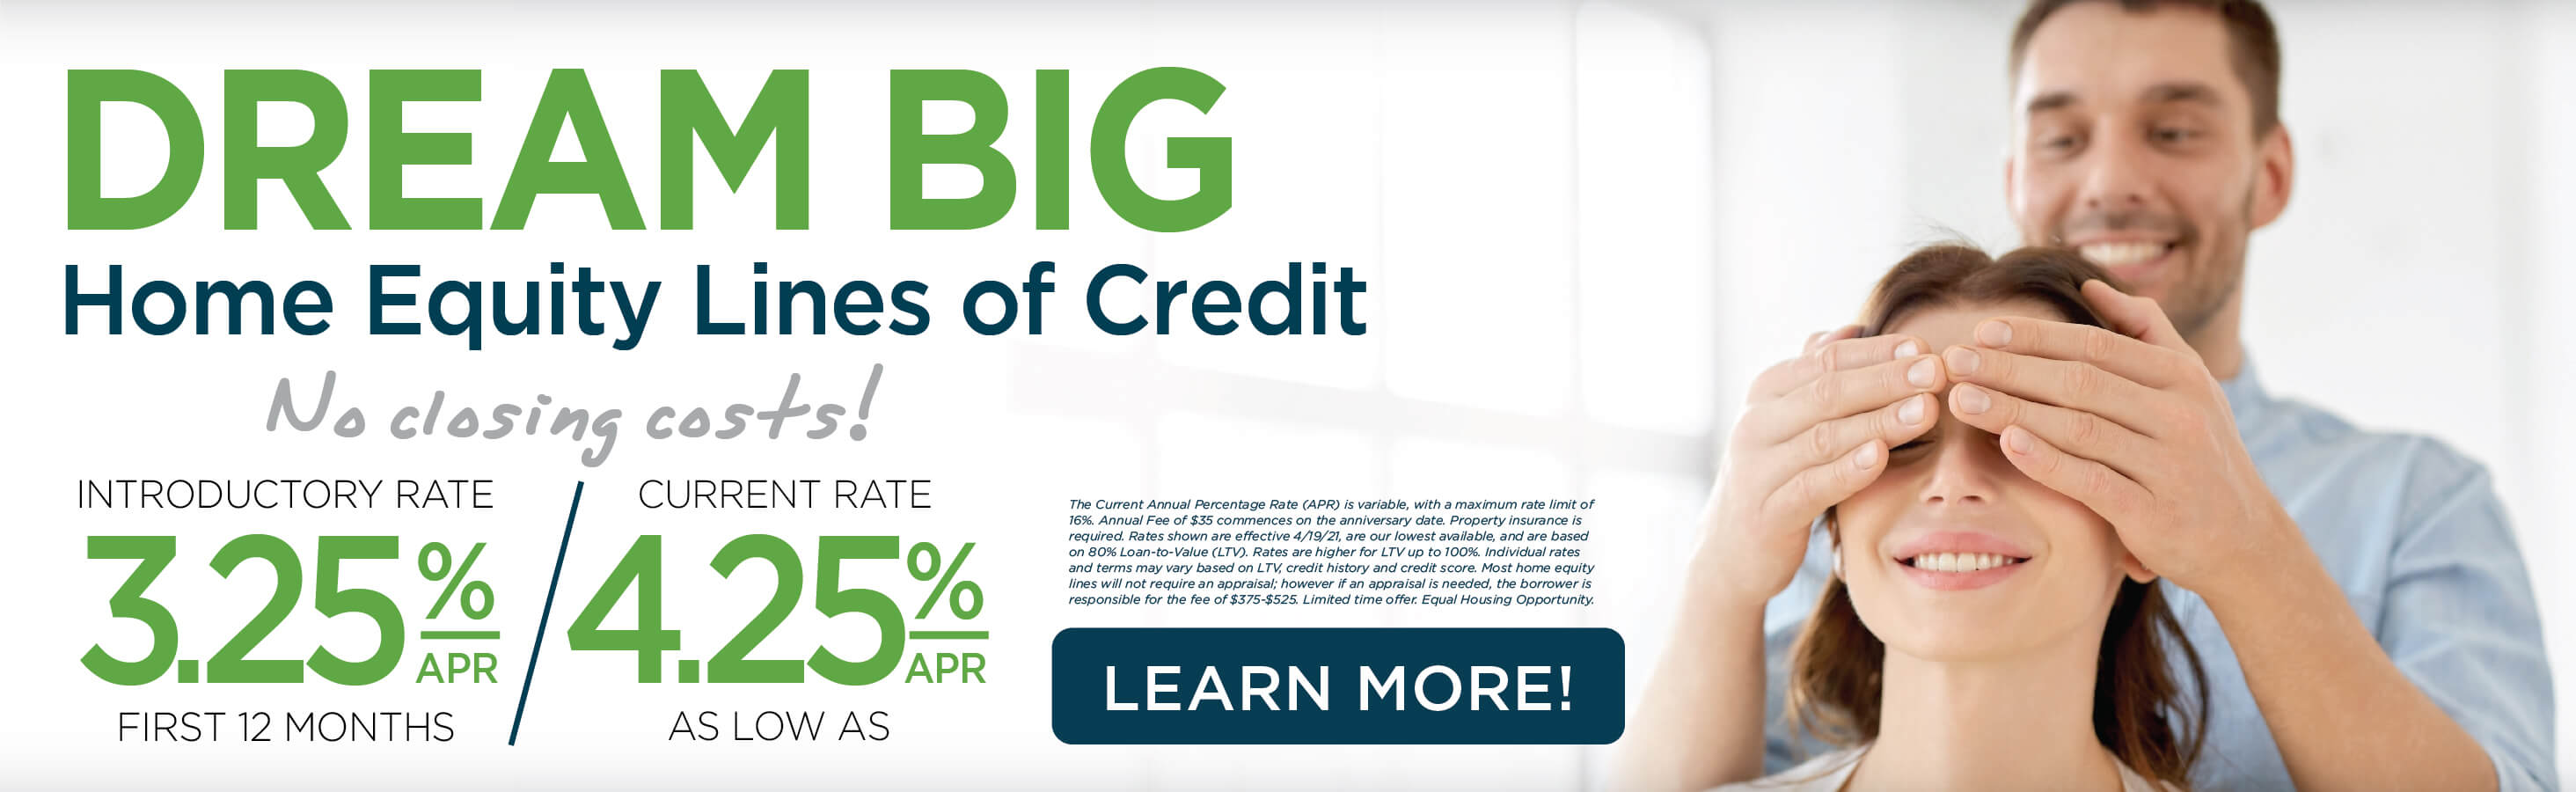 Home Equity Line of Credit - No Closing Costs Offer